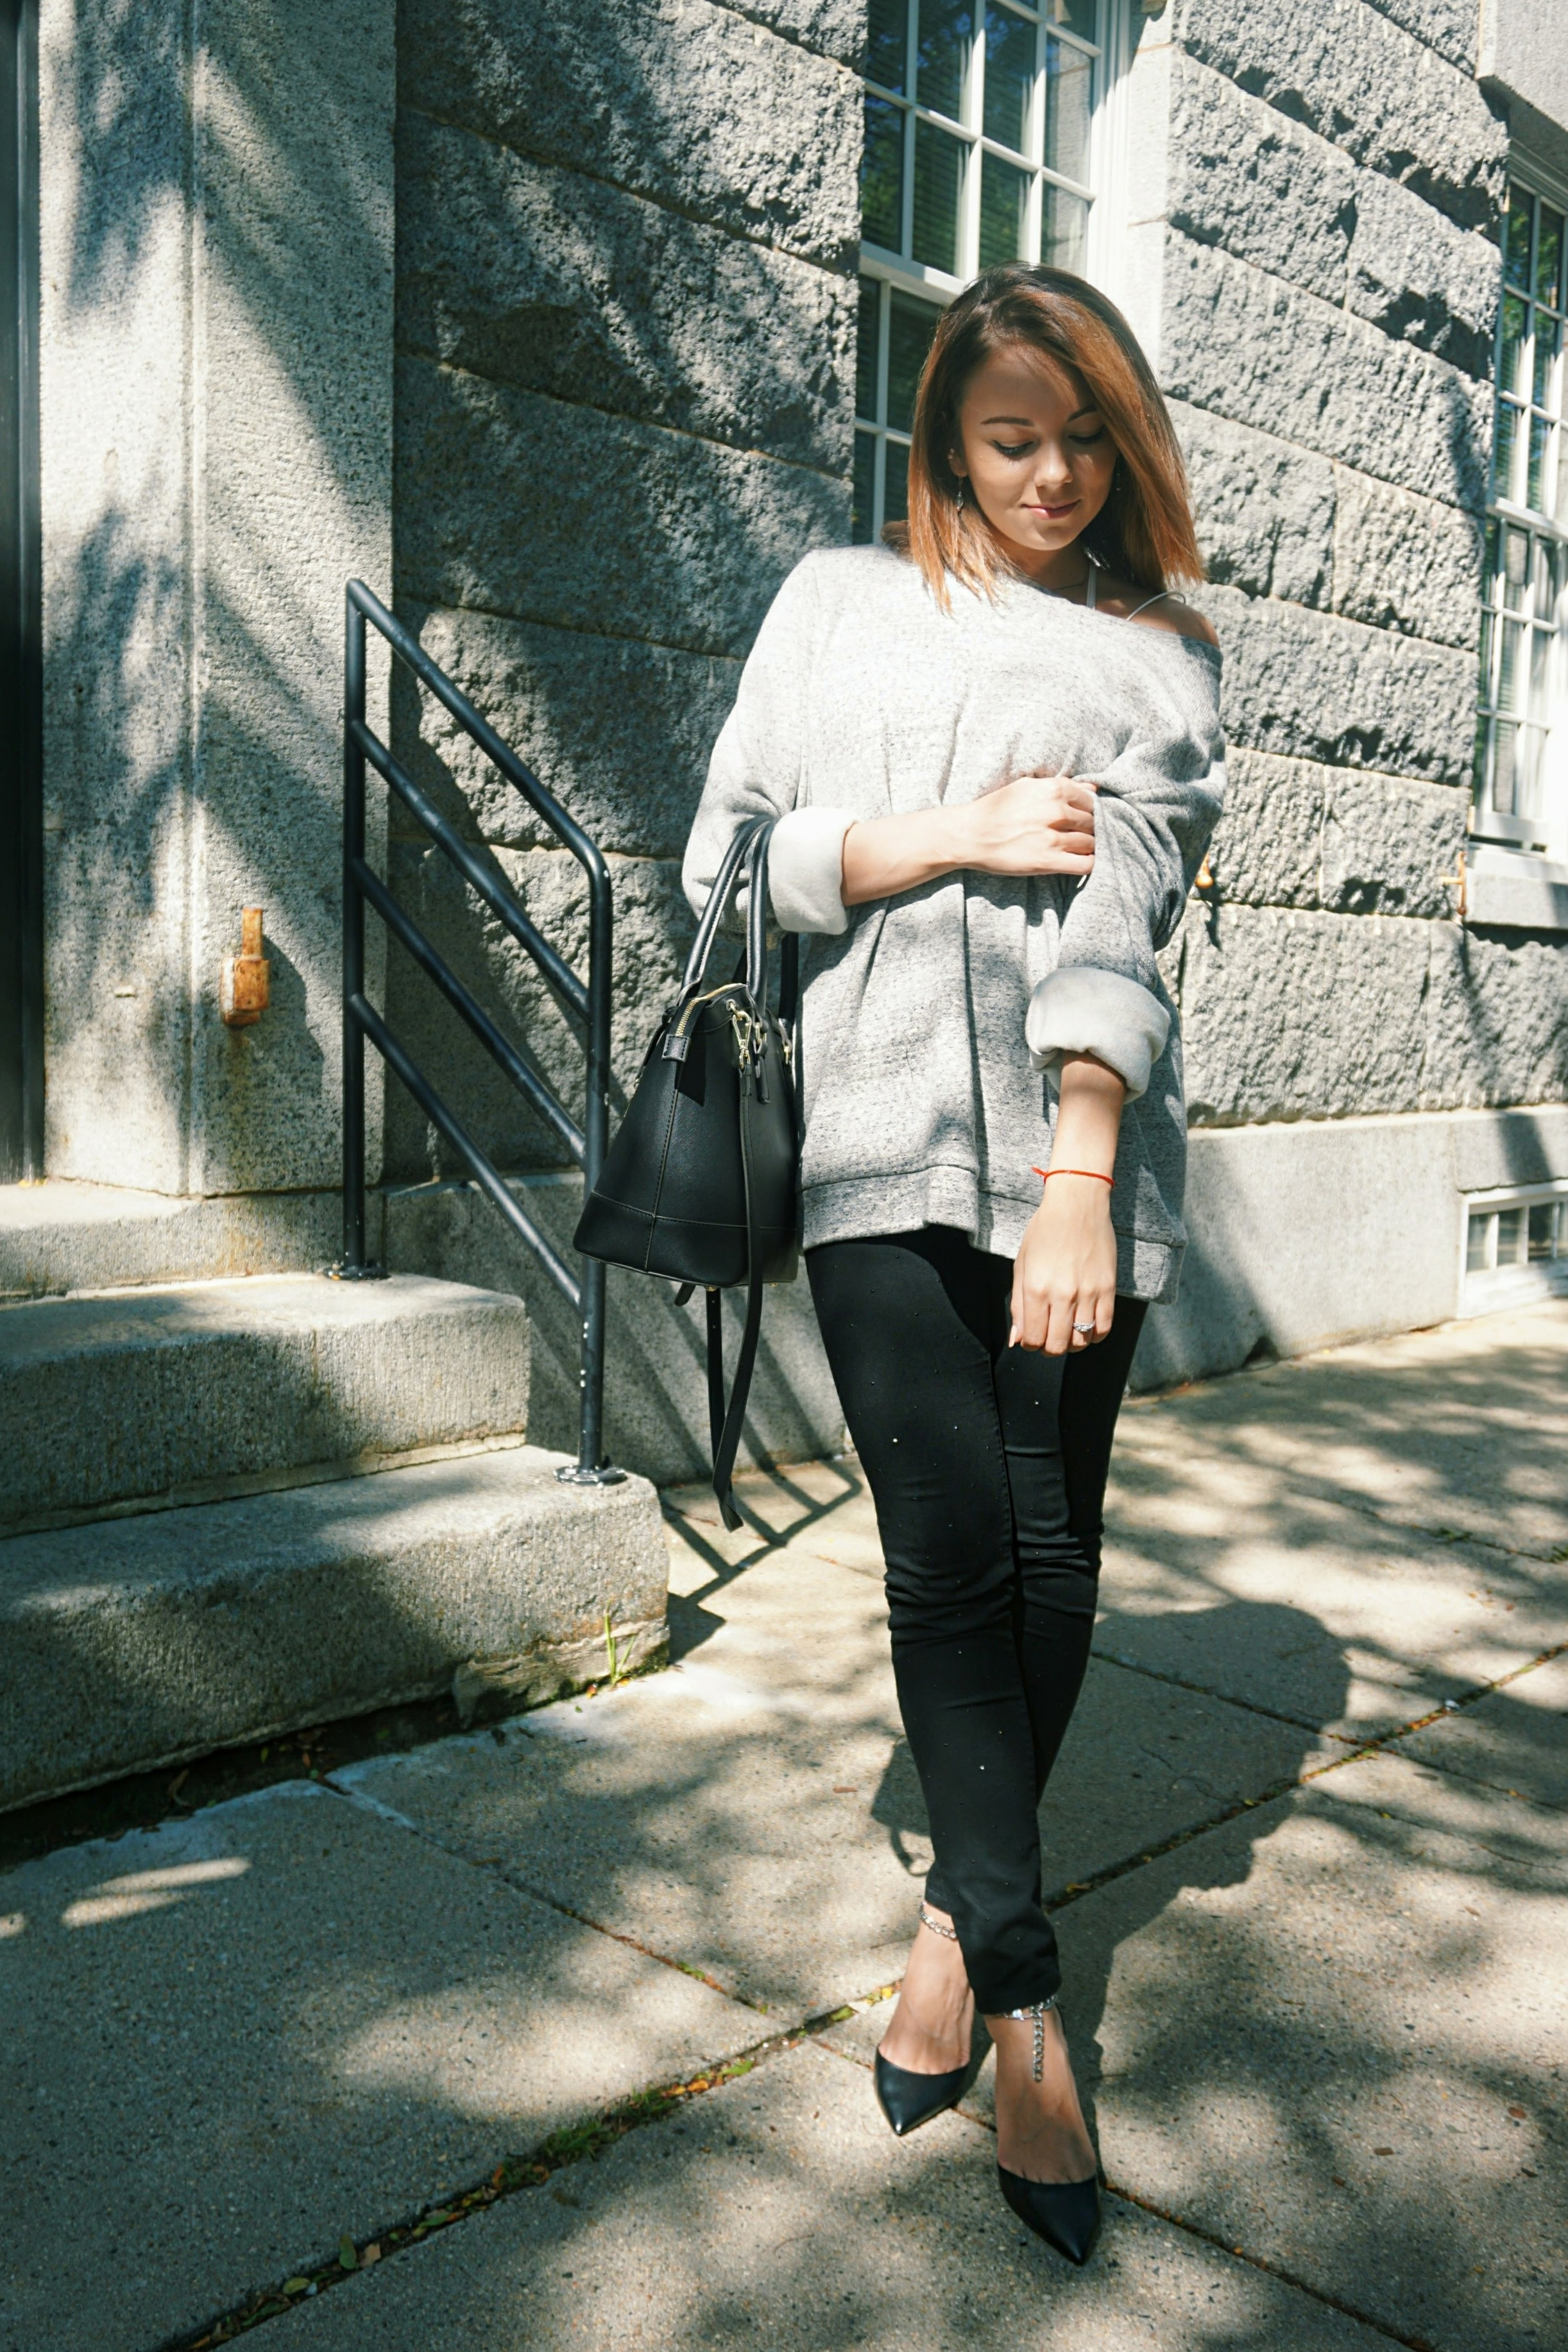 A lifestyle blogger posing in front of a gray Boston building, wearing a fall outfit.